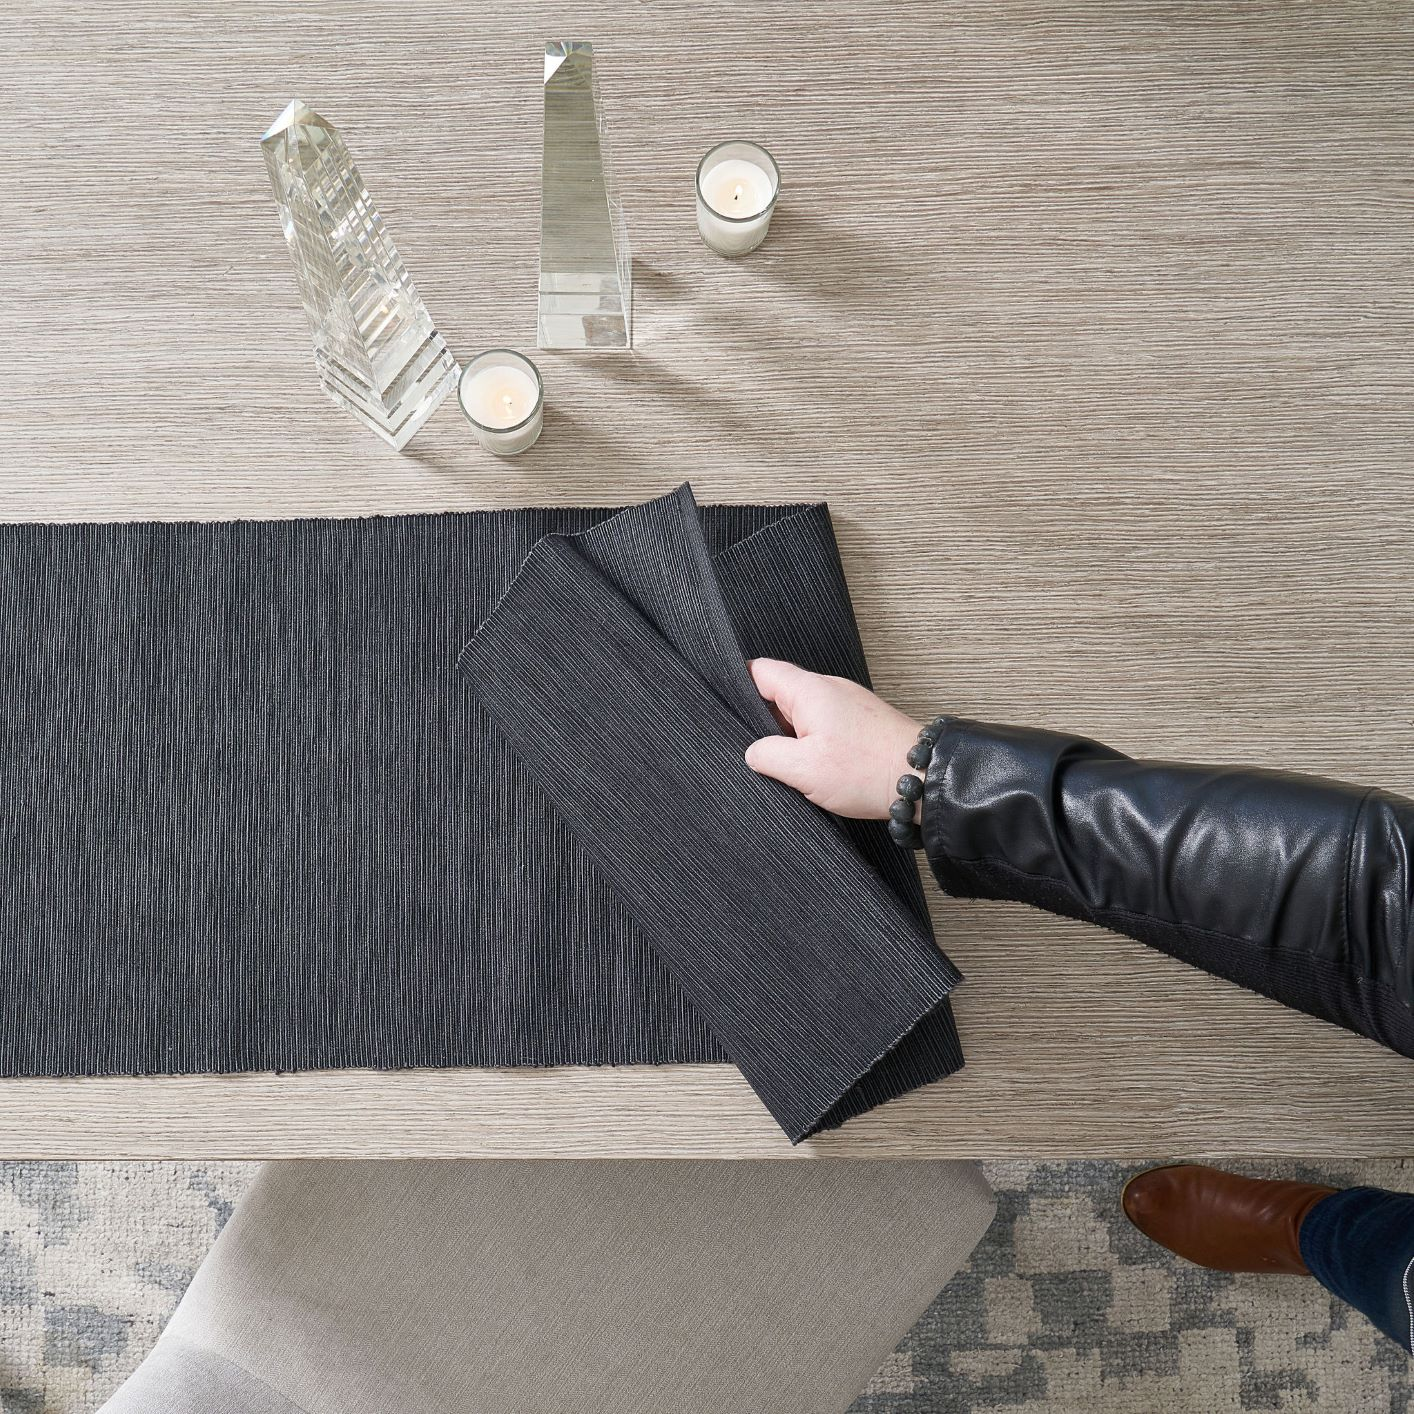 Black tablecloth in table